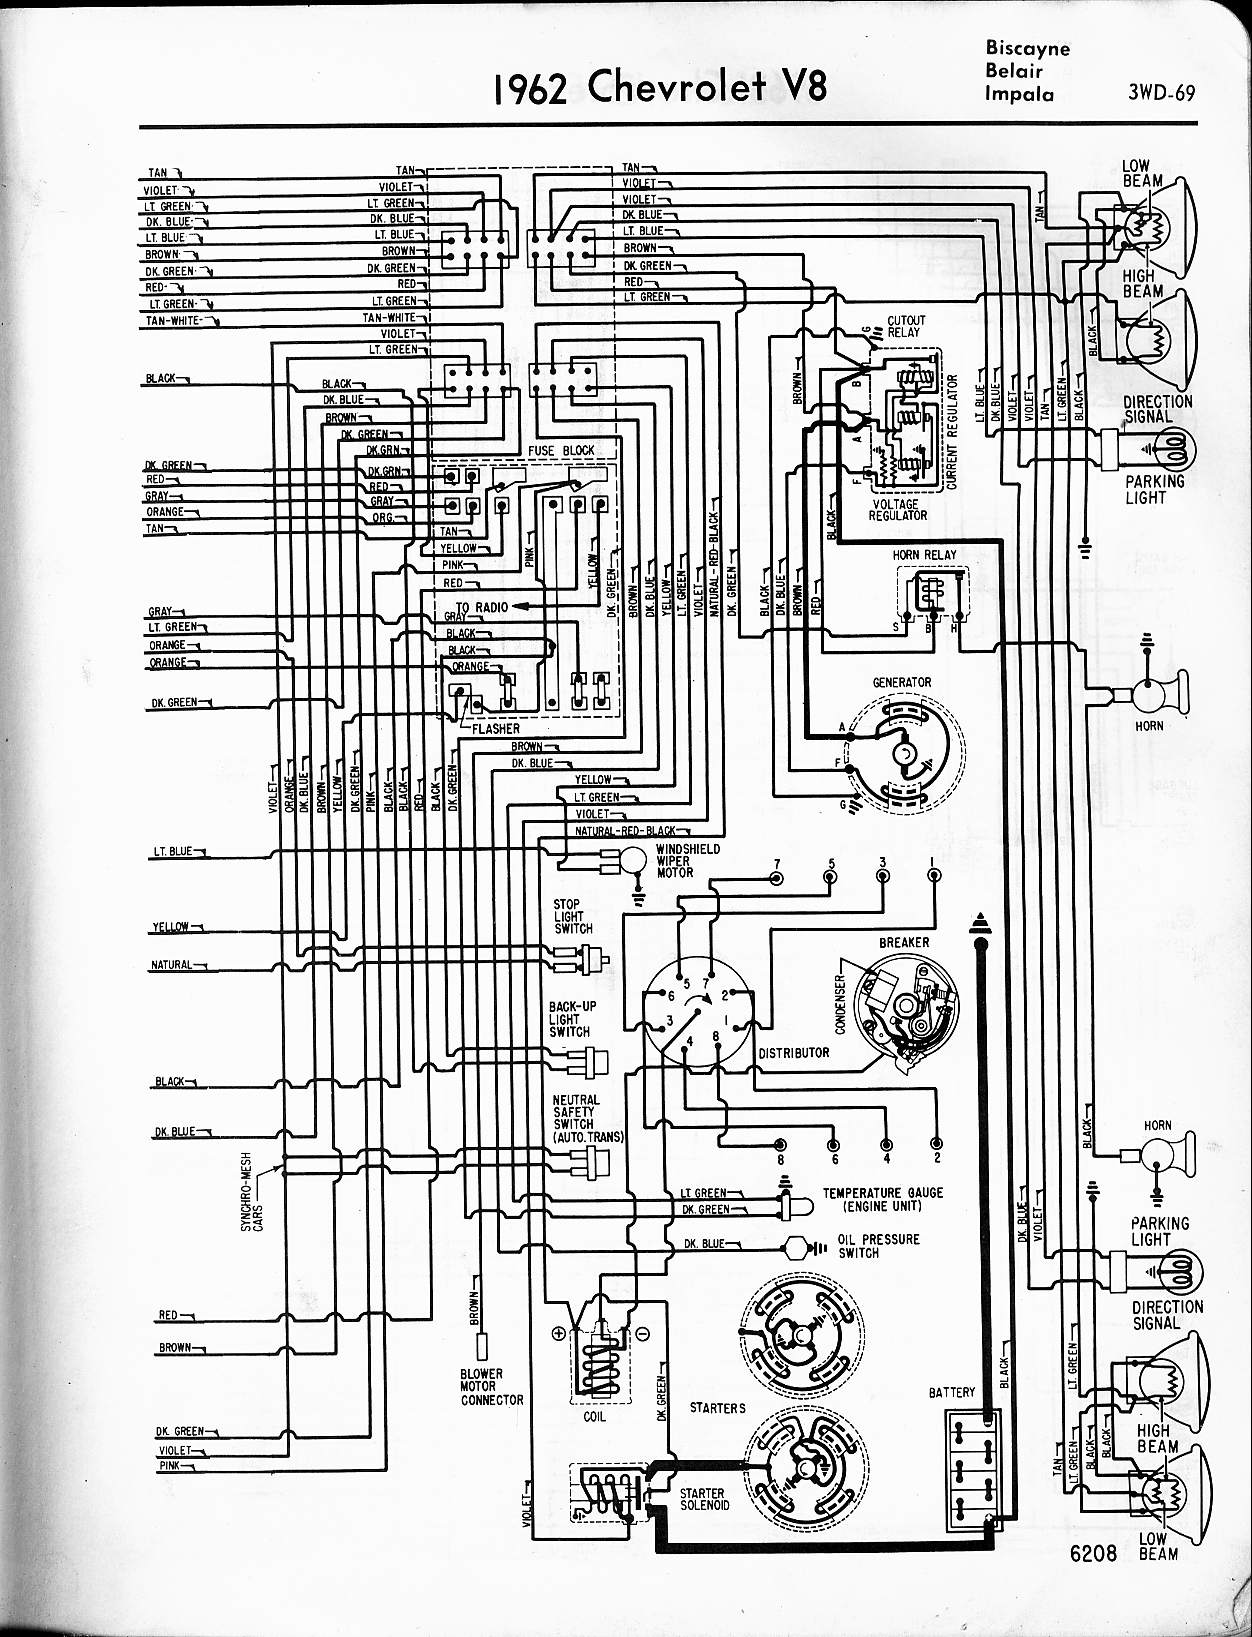 1966 Impala With Hei Distributor Wiring Diagram Guide And 350 Chevrolet Diagrams Site Rh 38 Geraldsorger De